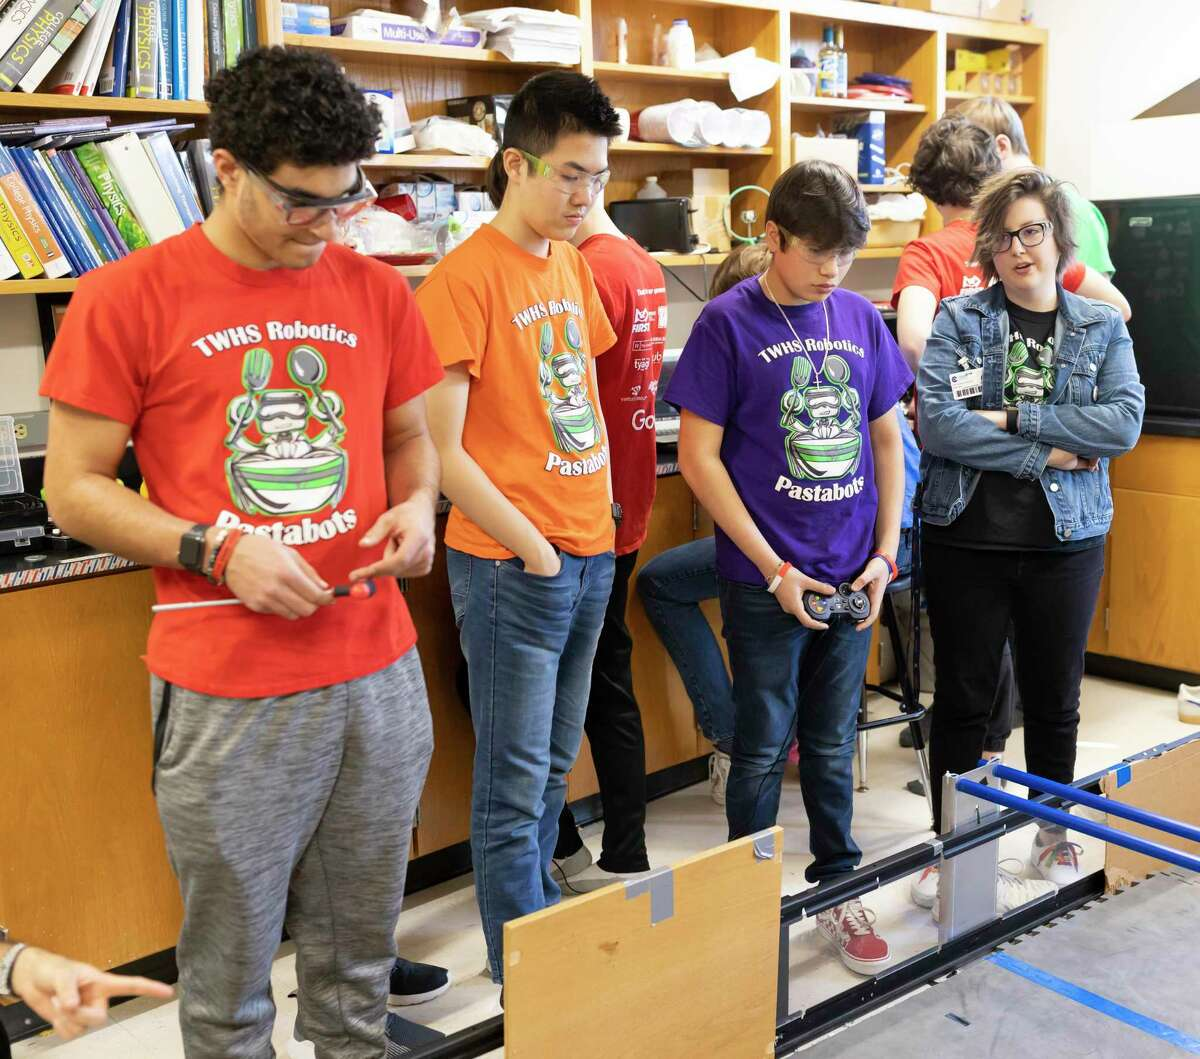 From left to right, Diego Zarur, Stone Meng, Mateo Martinez and Lauren Hamel practice driving their robot at The Woodlands High School, Thursday, Feb. 27, 2020. The Woodlands High School will be competing in state finals in Dallas on March 14, 2020.